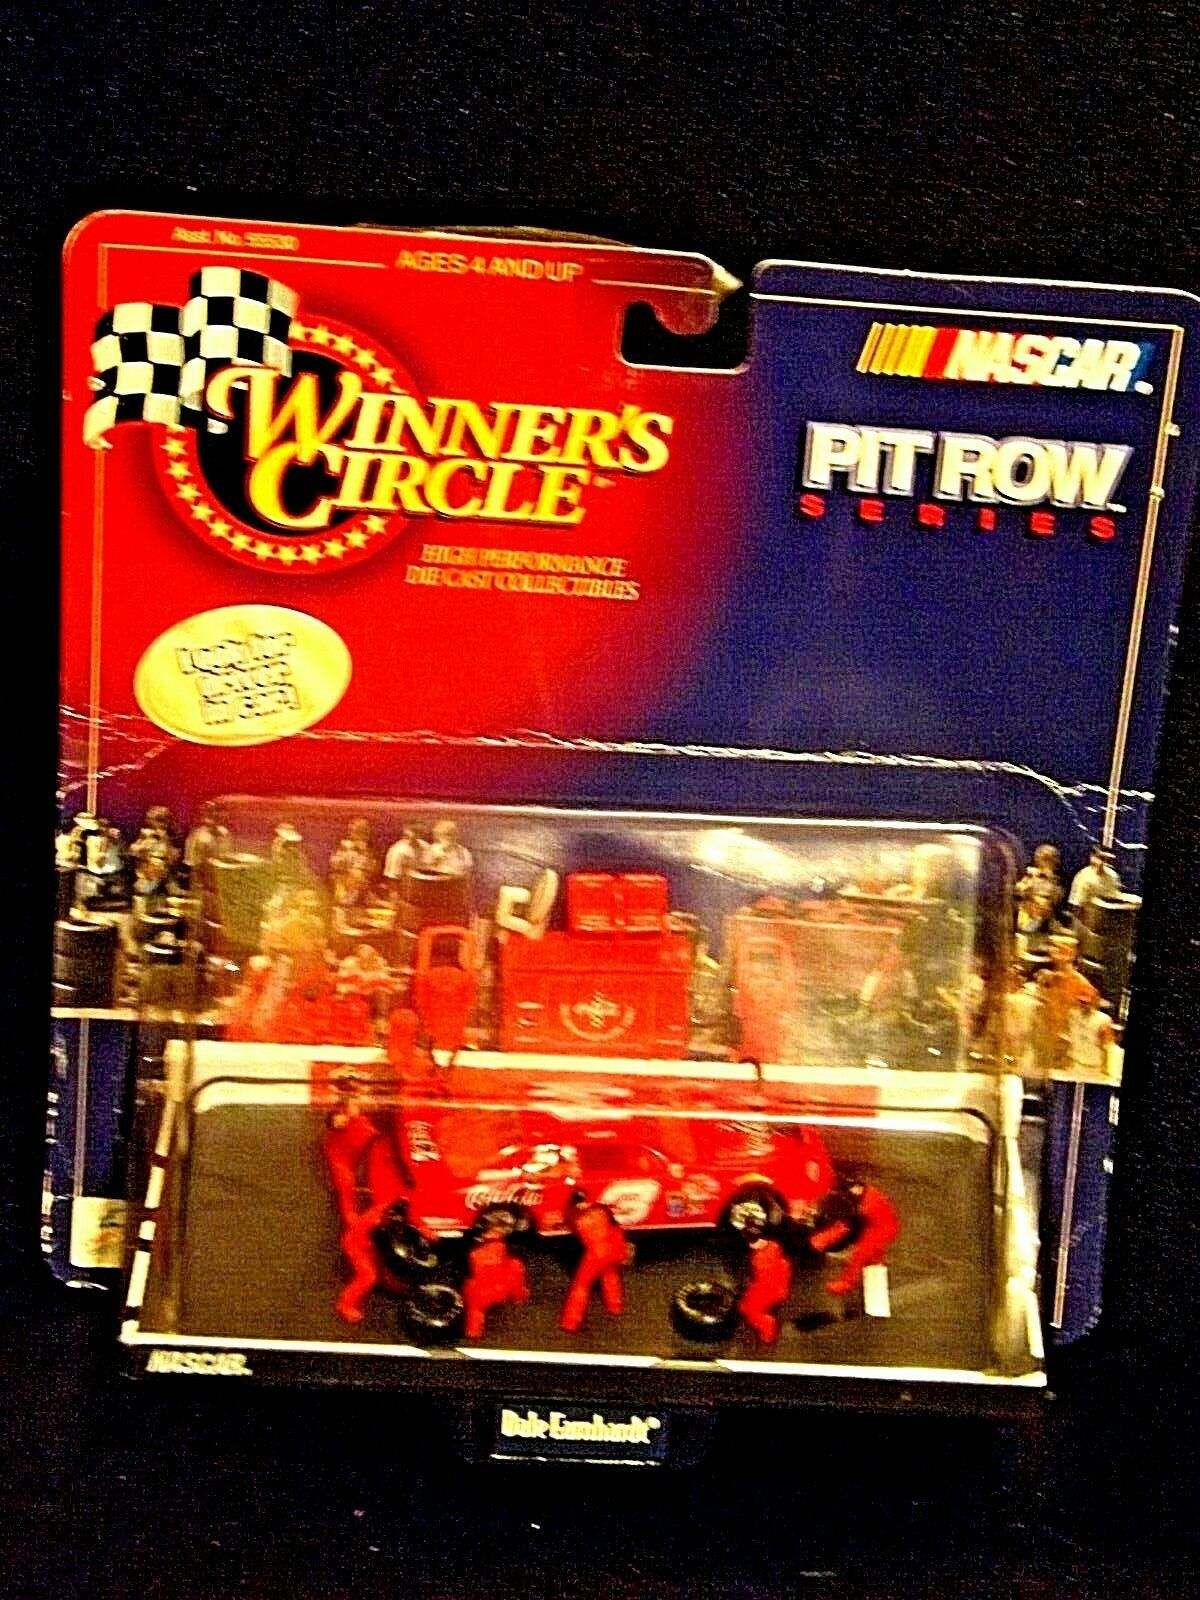 Winner's Circle NASCAR Pit Row Series#3 red Dale Earnhardt High Performance